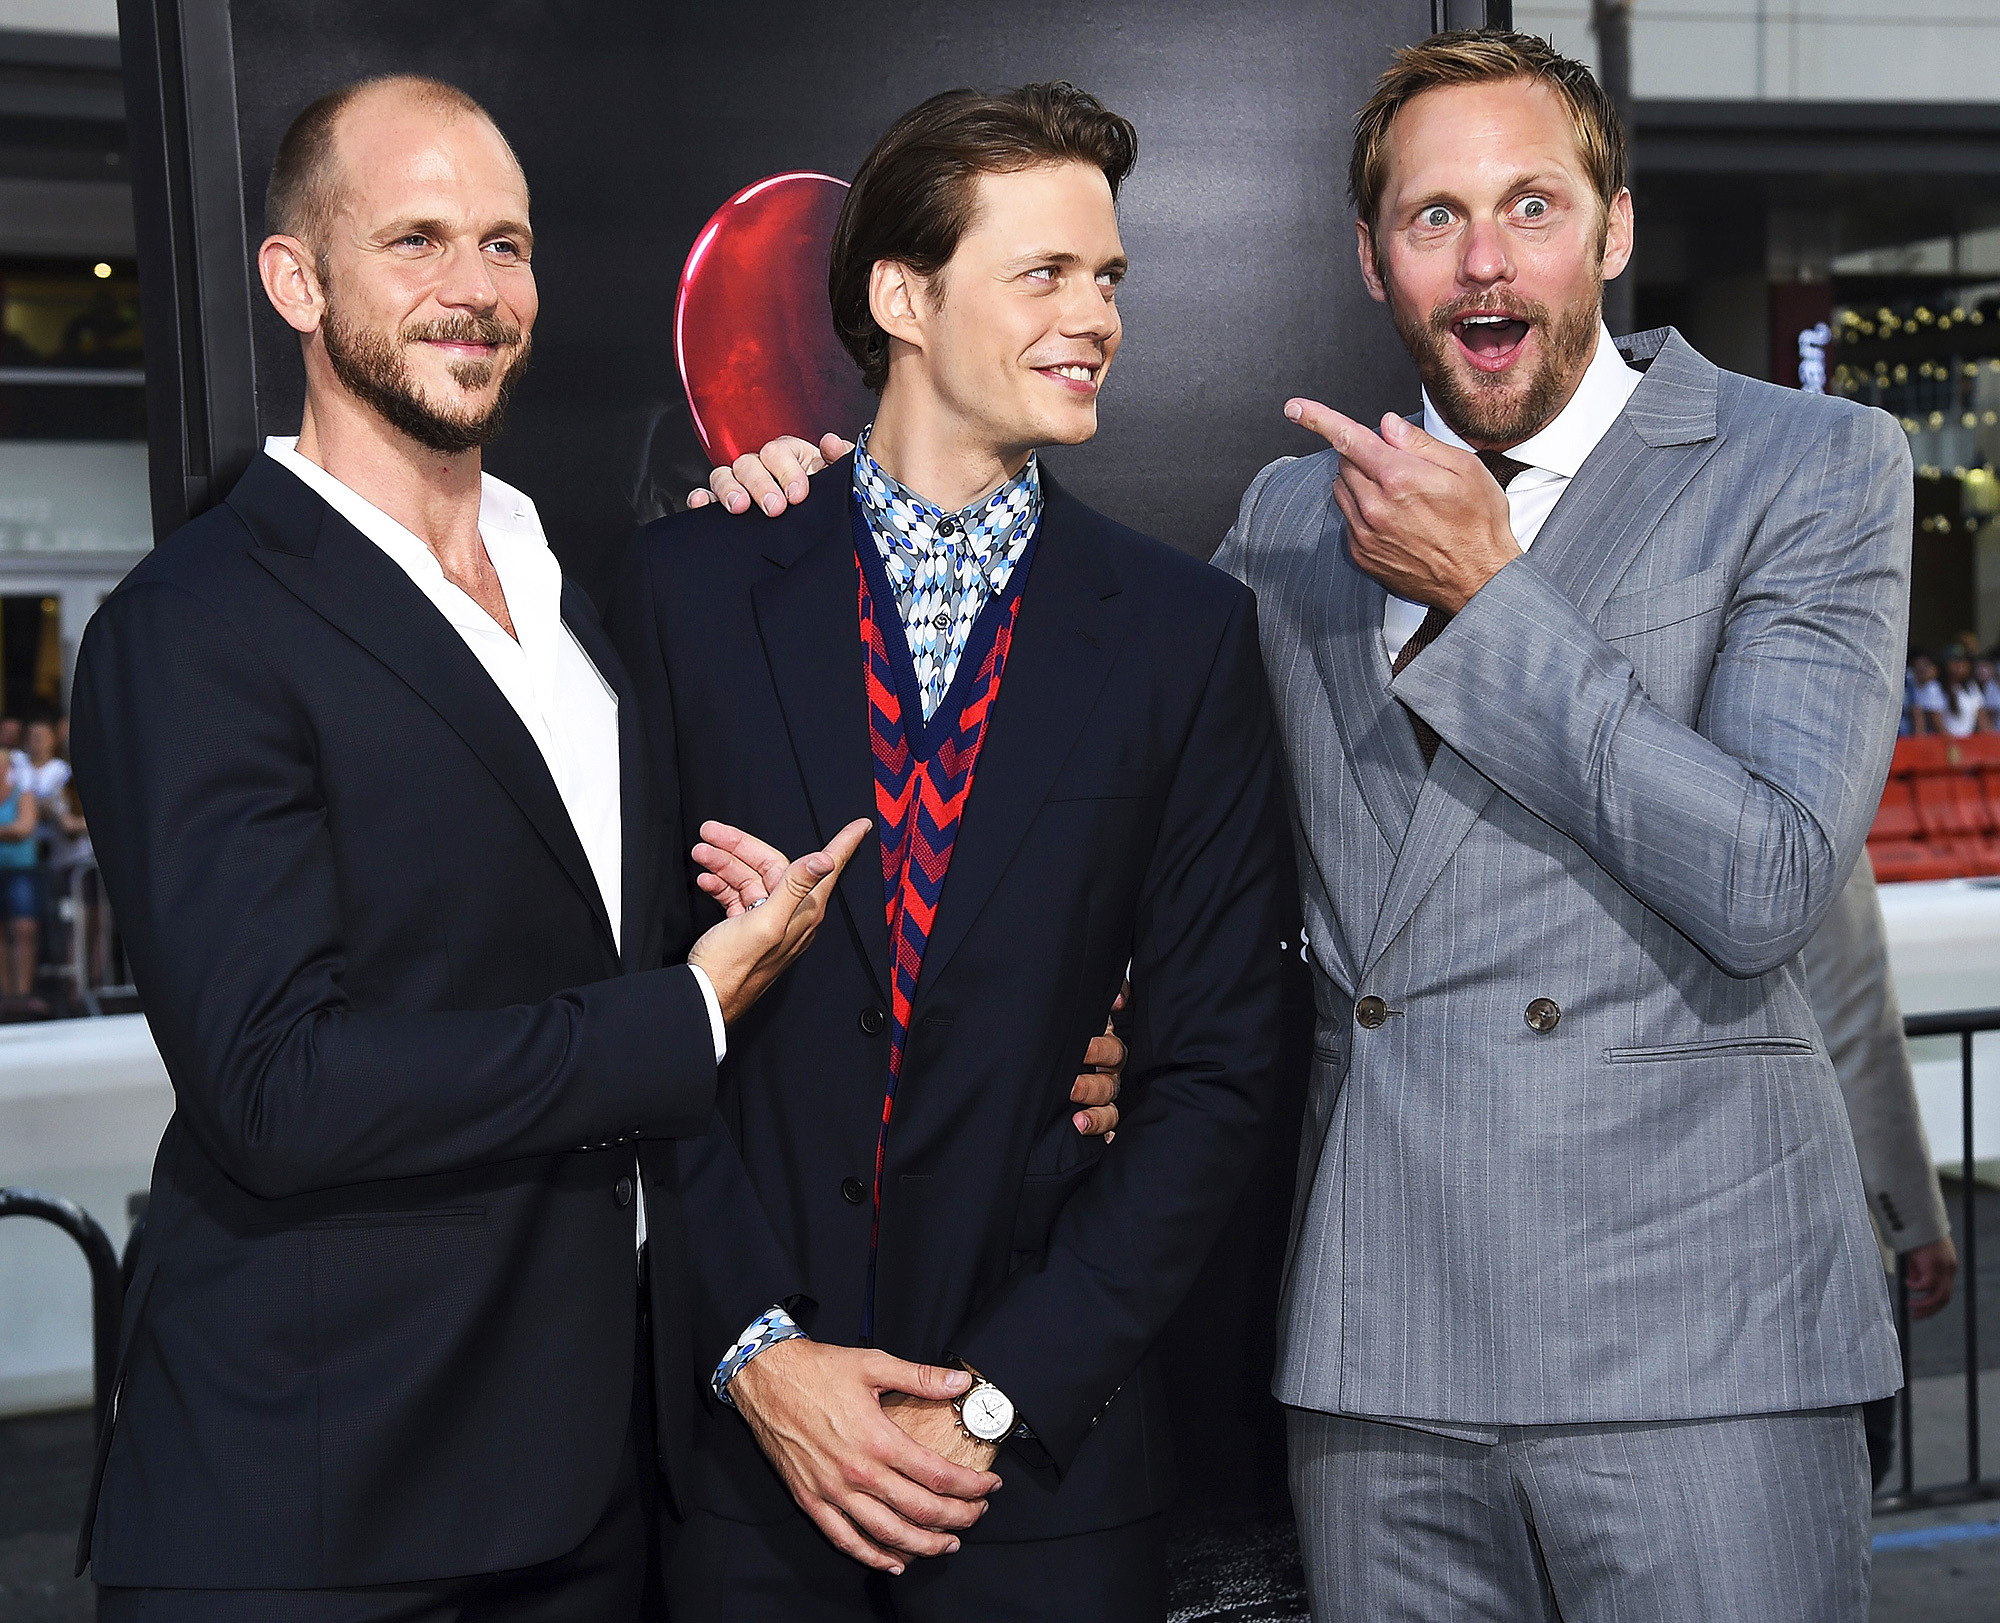 Bill (middle) with his brothers Gustaf (left) and Alexander (right) at the IT premiere in 2017.